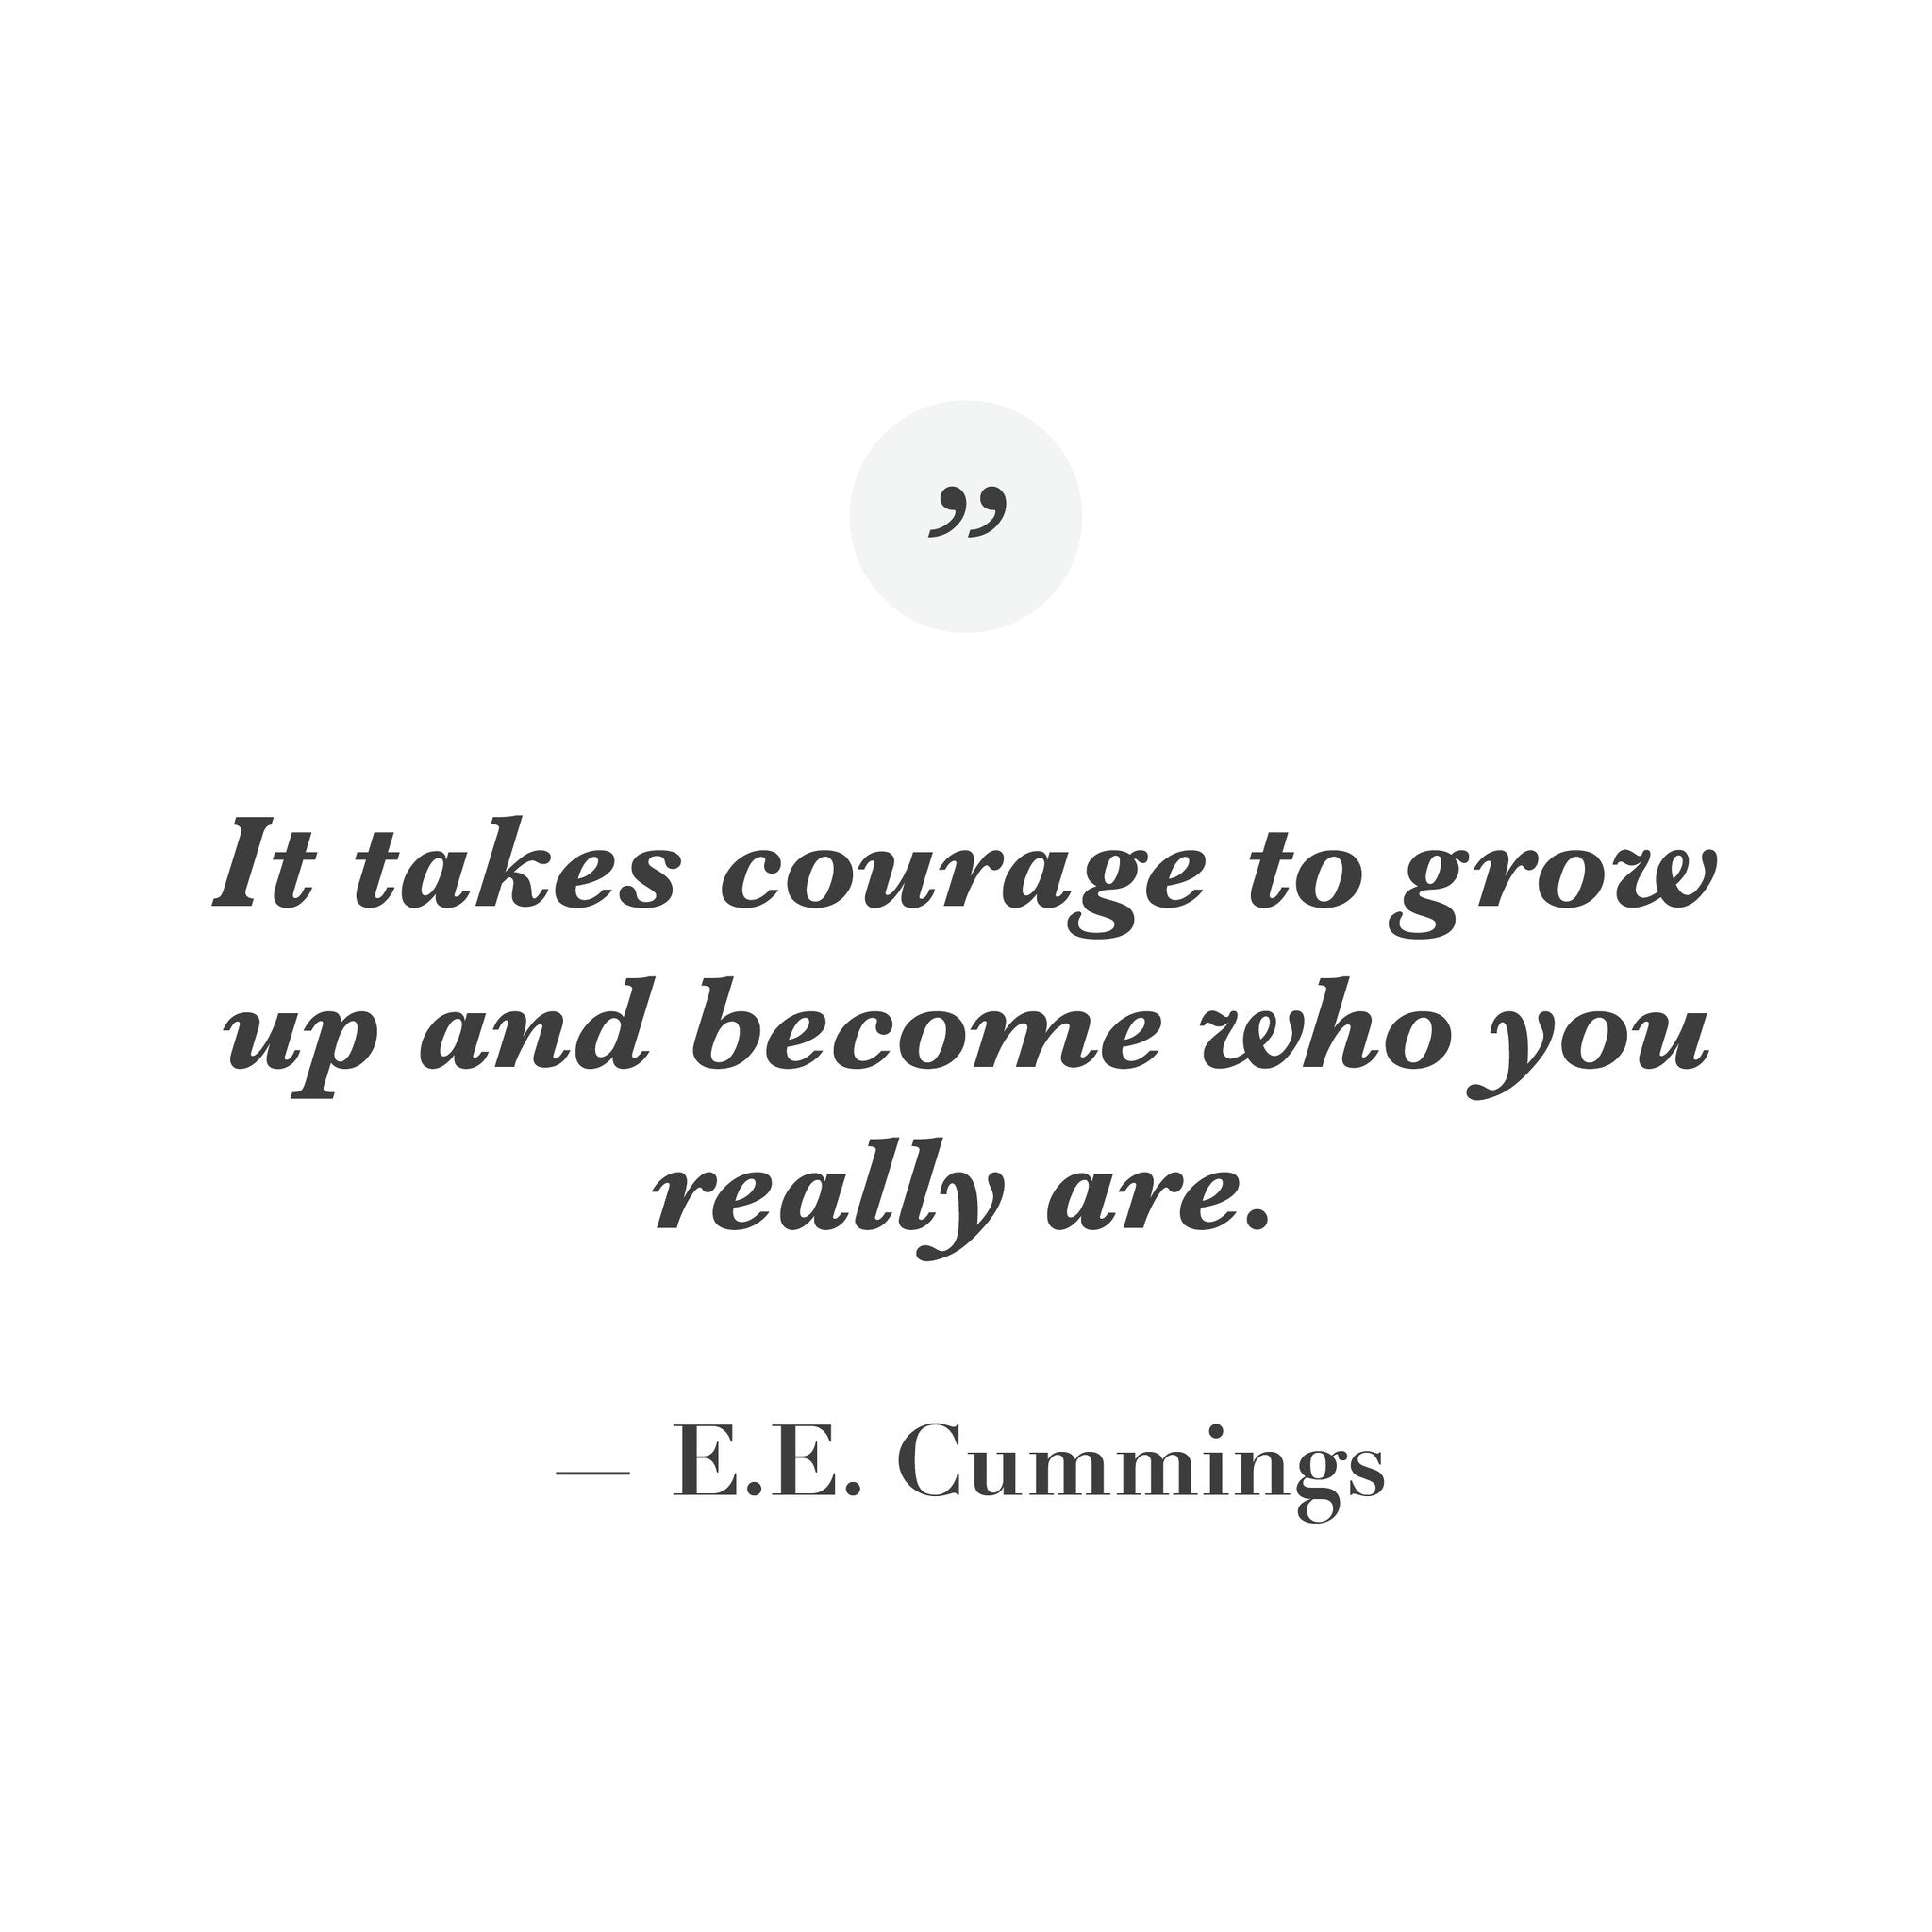 Redfish Kids Clothing Courage Quotes, Courageous Quotes, Quotes on Courage